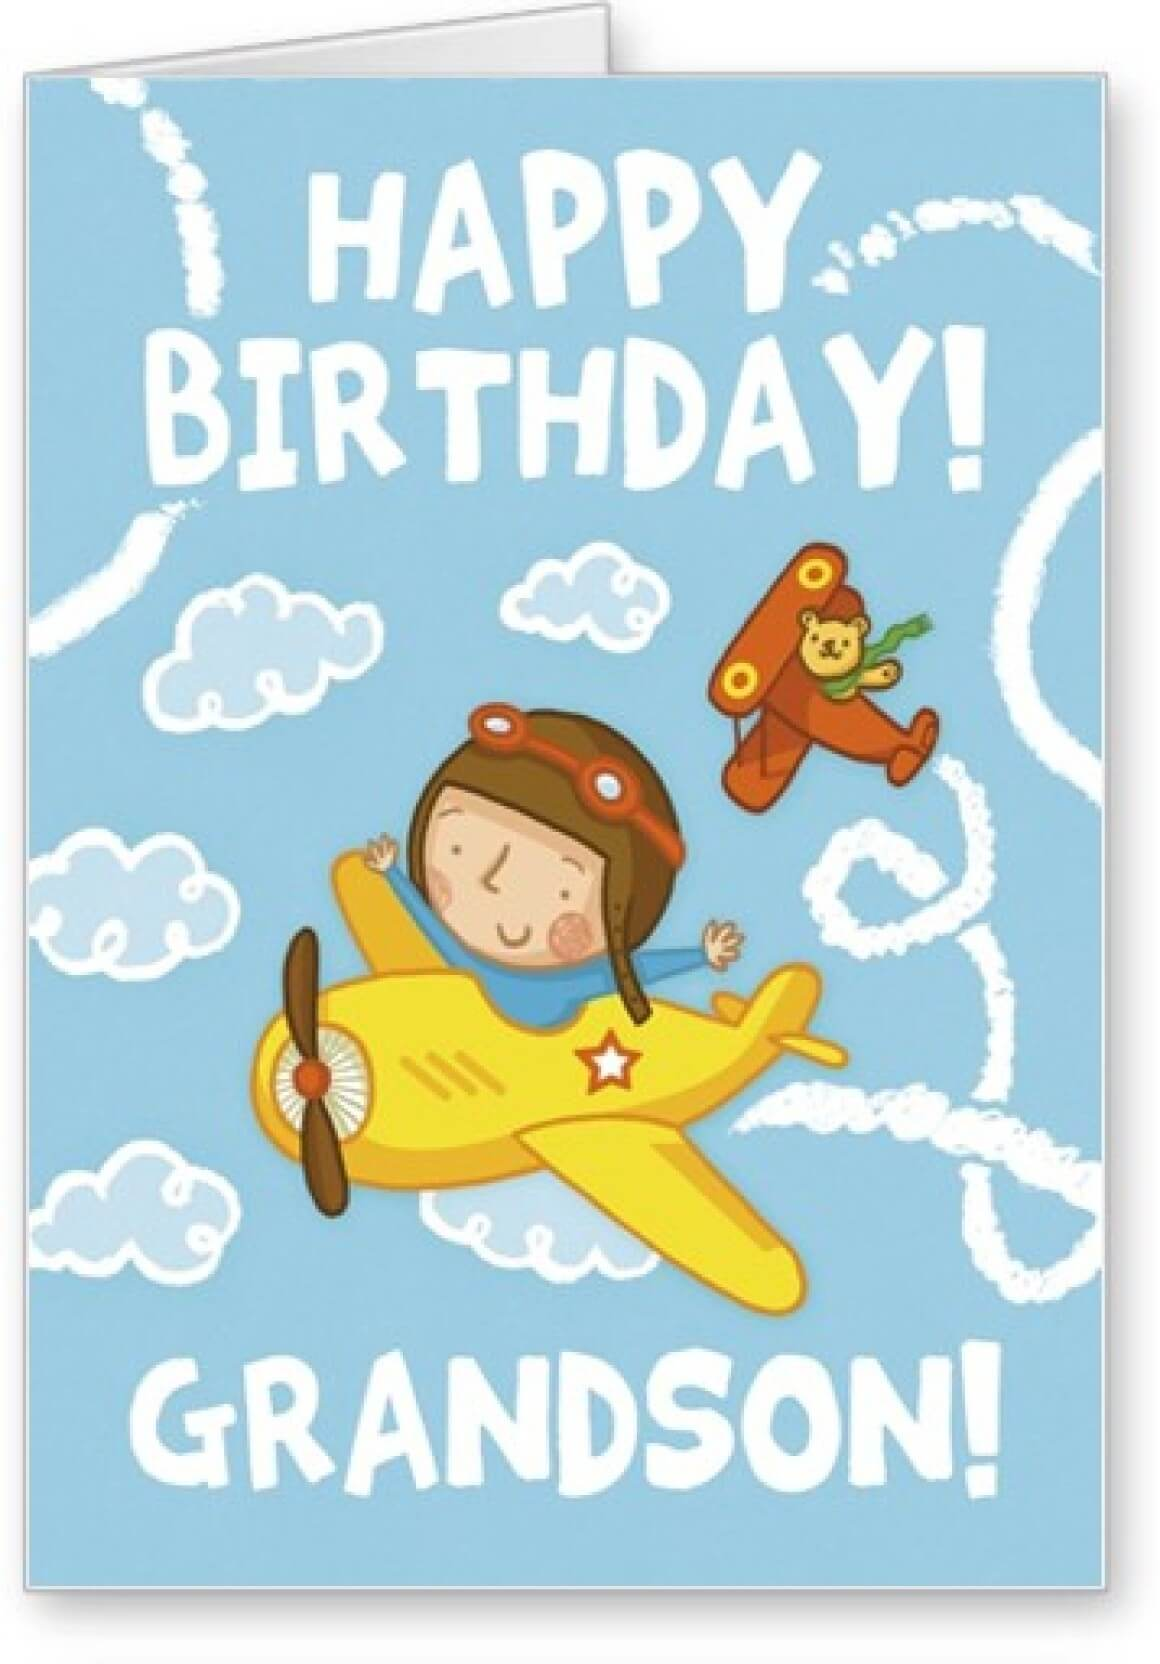 Happy Birthday Grandson Aeroplane Wishes